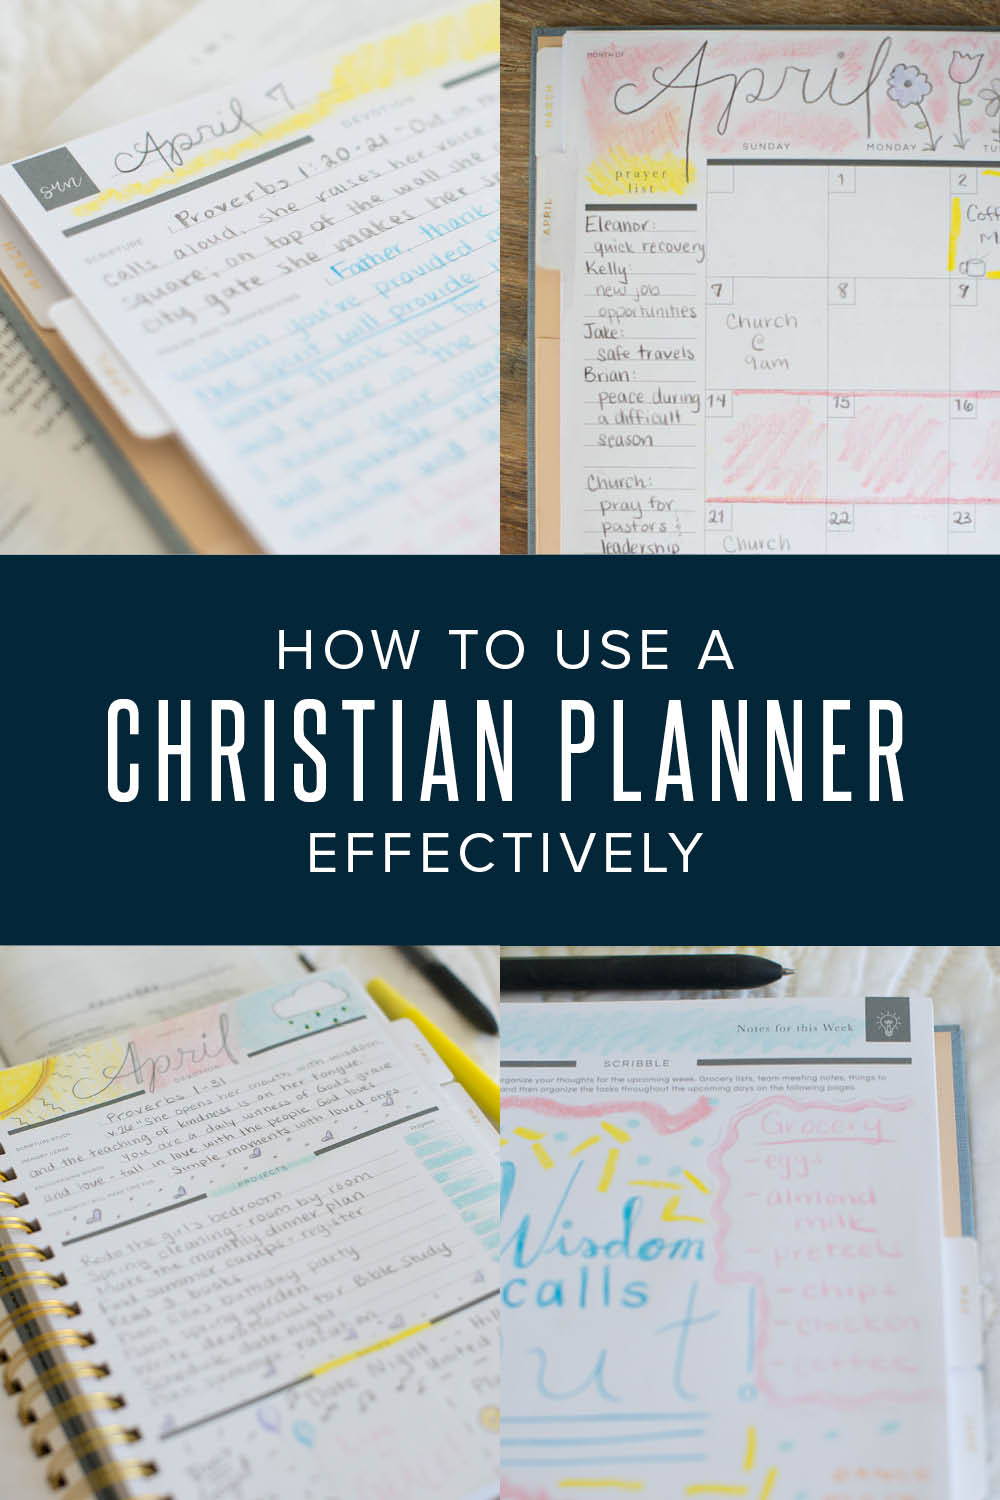 tips on how to use a Christian planner effectively